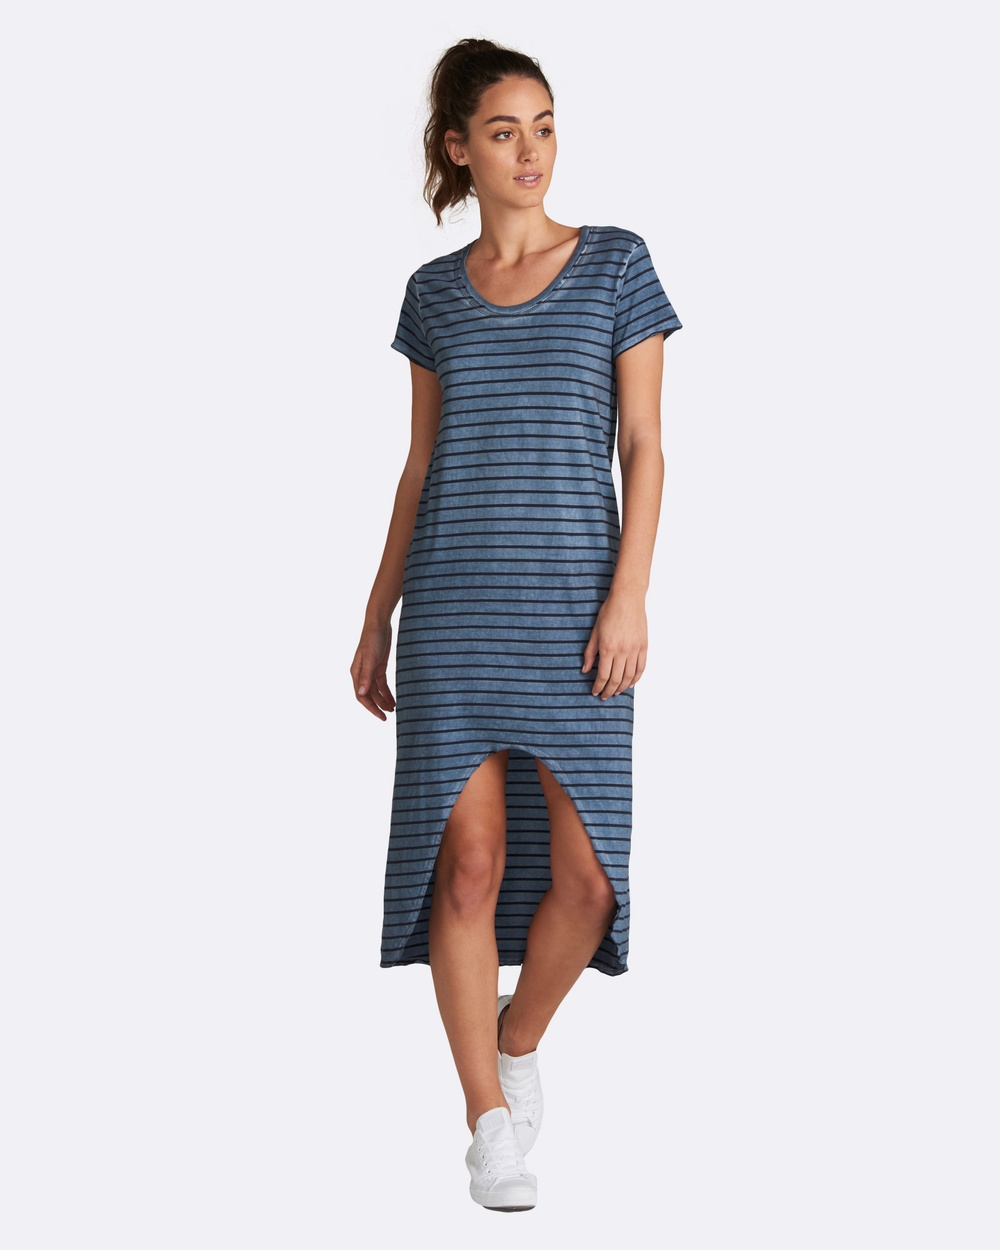 jac + mooki Maisie Stripe Dress Dresses Indigo Maisie Stripe Dress